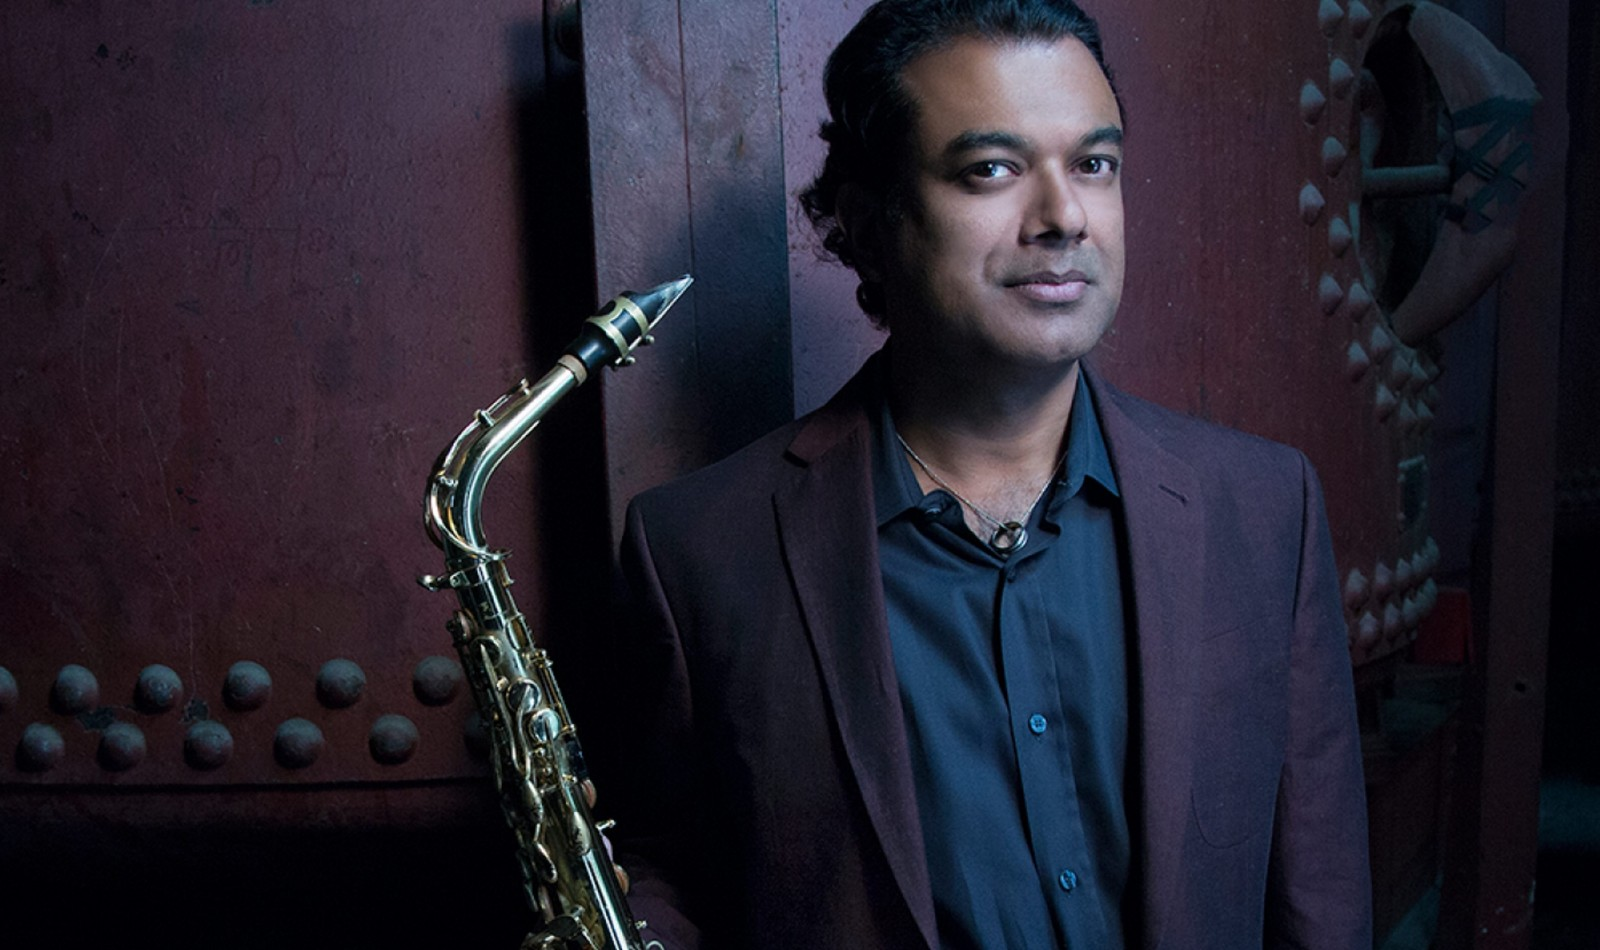 Rudresh Mahanthappa's Bird Calls will perform March 19 in the Drama Theatre, University at Buffalo Center for the Arts.